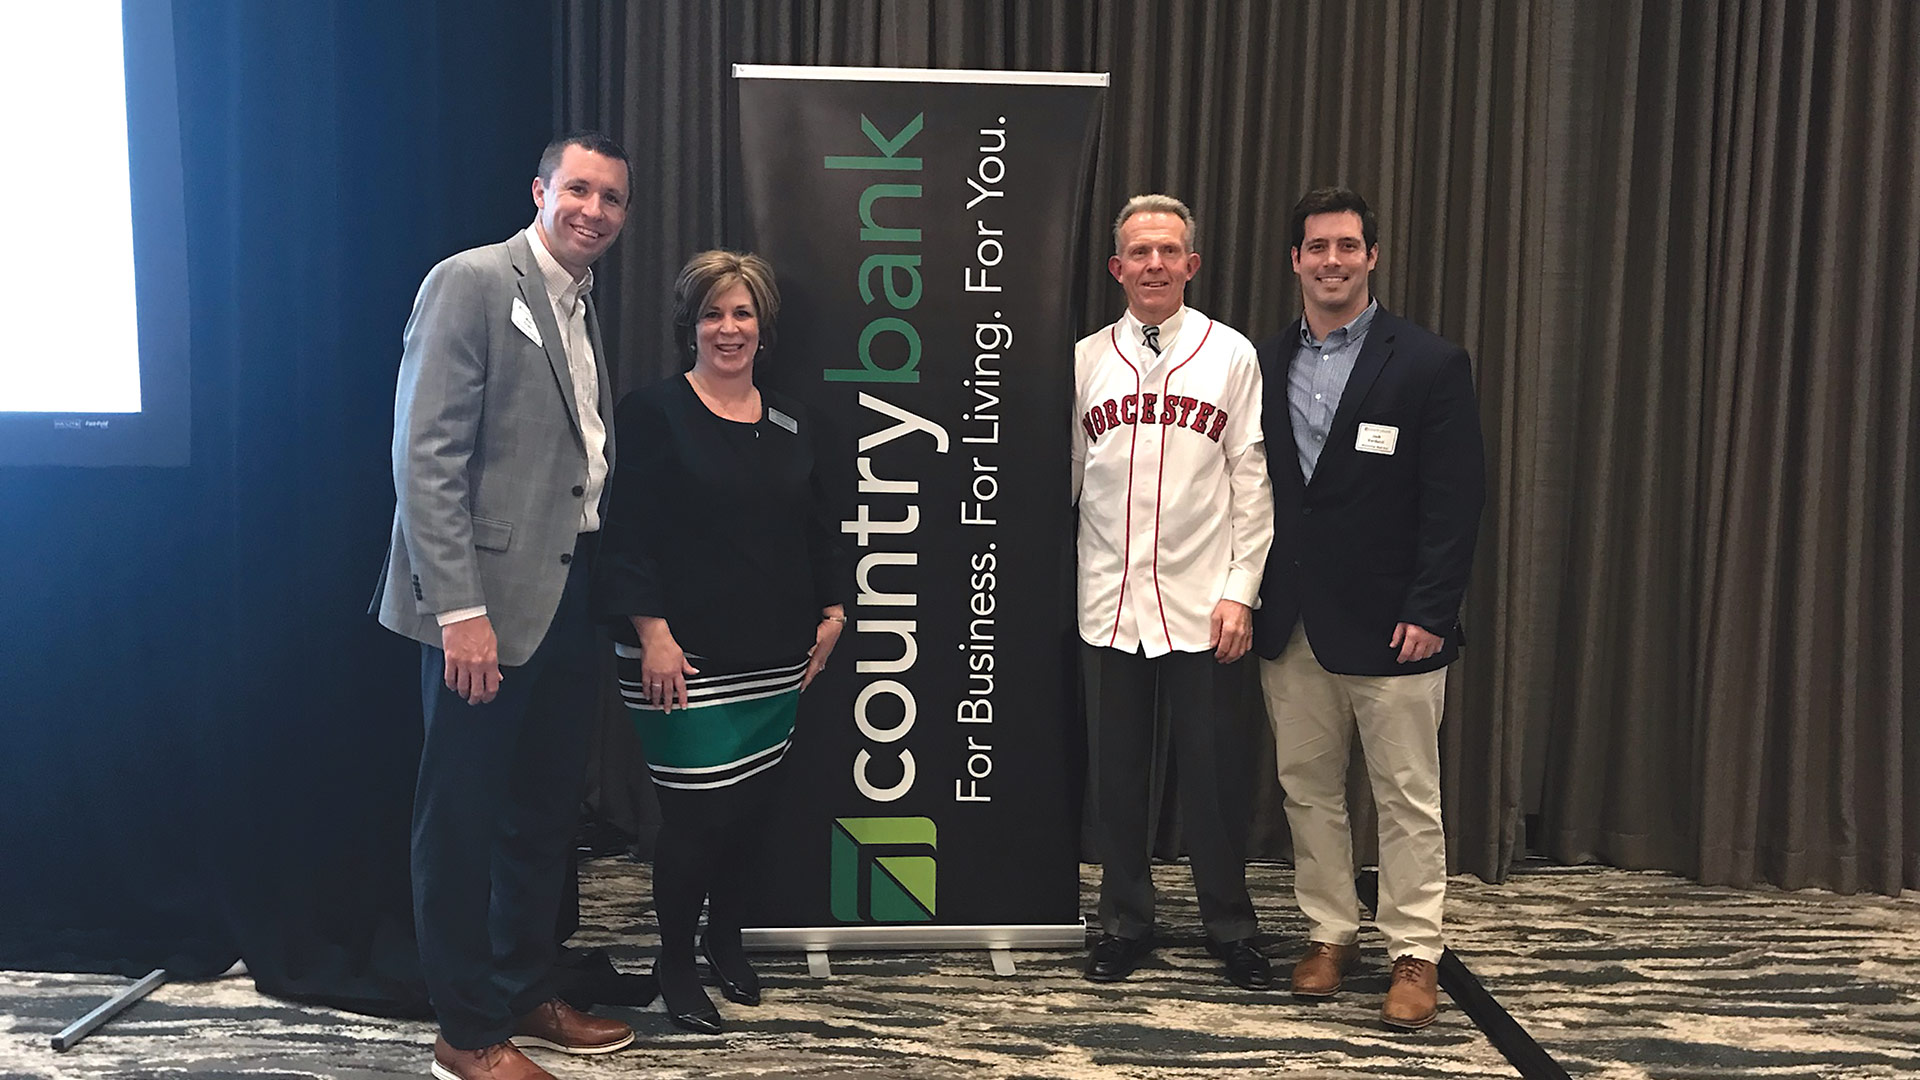 Pictured, from left, are Rob Crain, senior vice president of Marketing for the Worcester Red Sox; Shelley Regin, senior vice president of Marketing for Country Bank; Paul Scully, President and CEO of Country Bank, and Jack Verducci, vice president of Corporate Partnerships for the Worcester Red Sox.